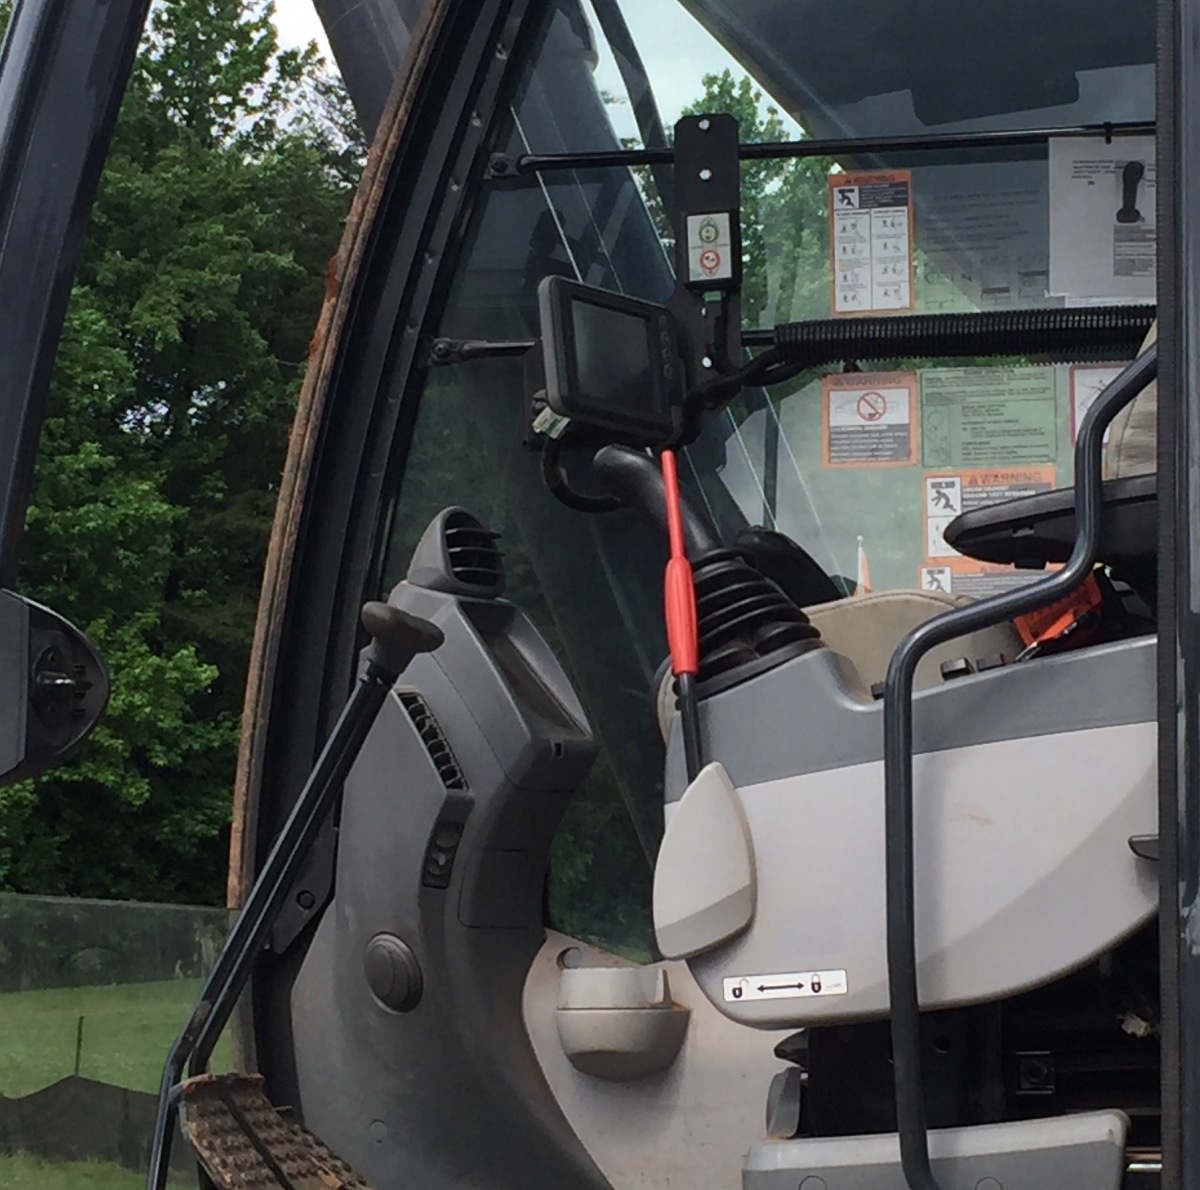 John Deere is adding GPS grade guidance technology to some of its G Series excavators